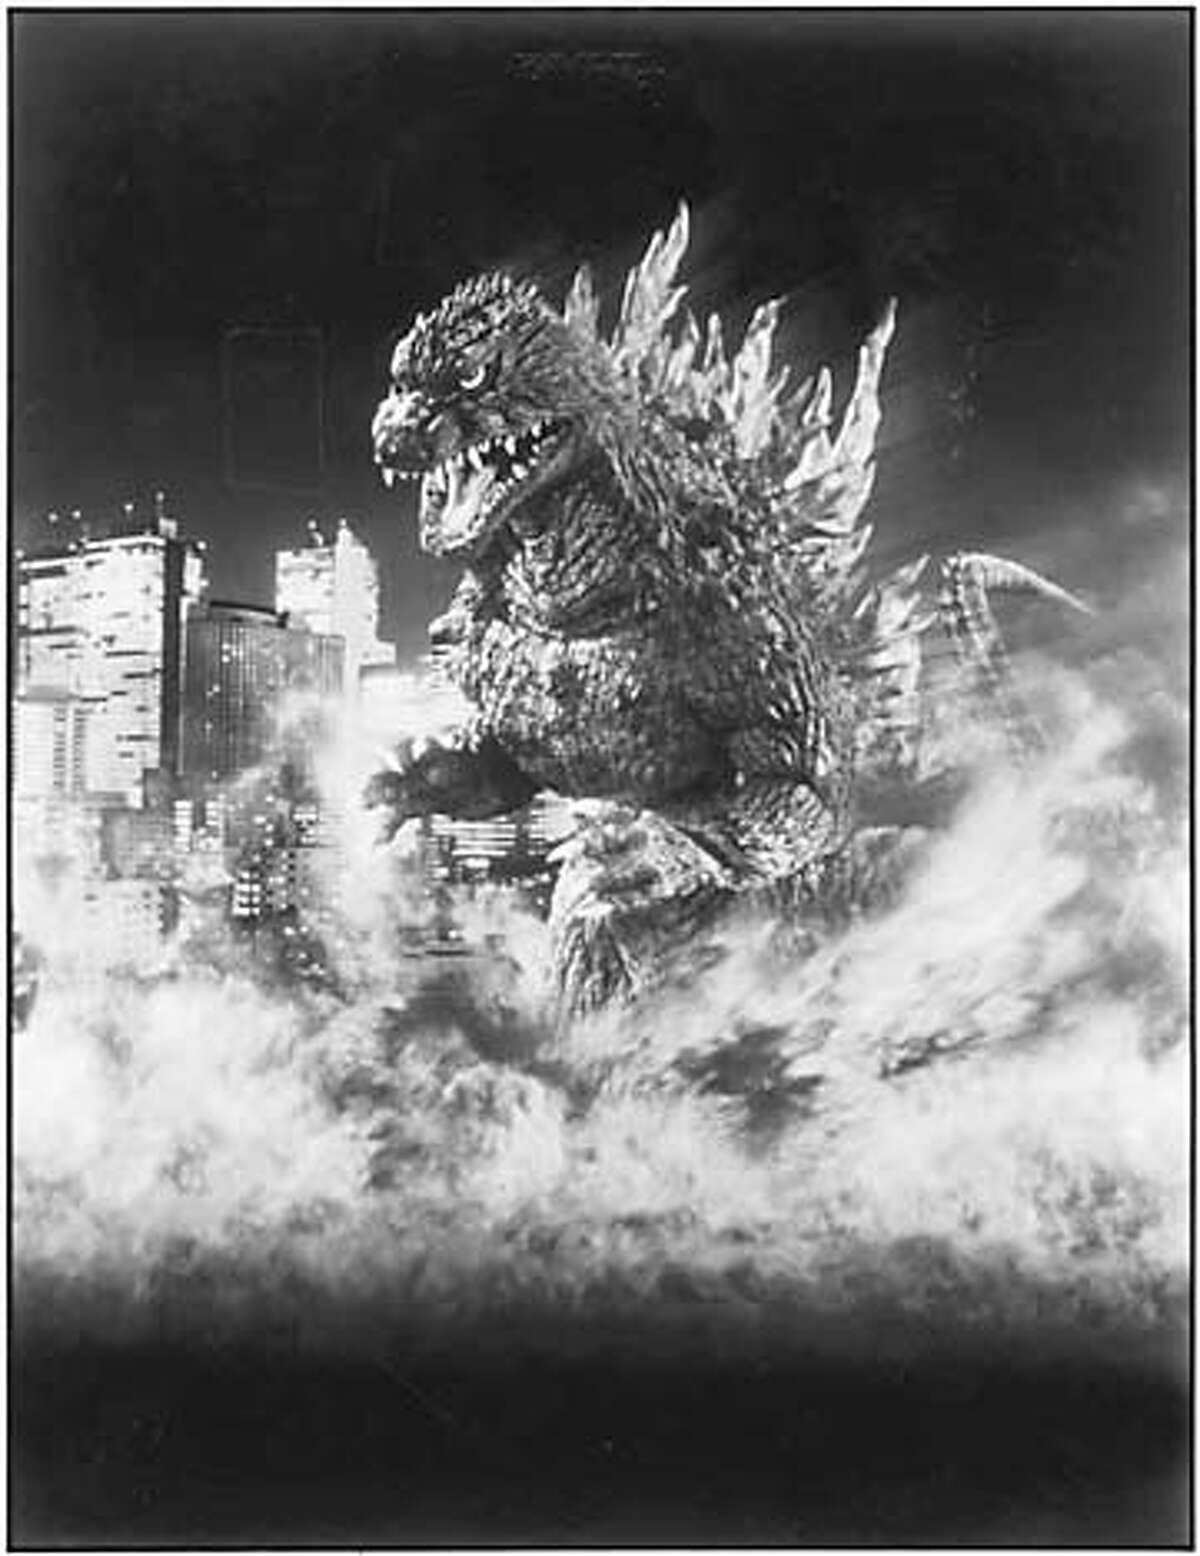 """One of the world's most famous and enduring characters, Godzilla returns to the big screen for his 23rd appearance in the Toho Prsentation/TriStar Pictures Release, """"Godzilla 2000."""""""